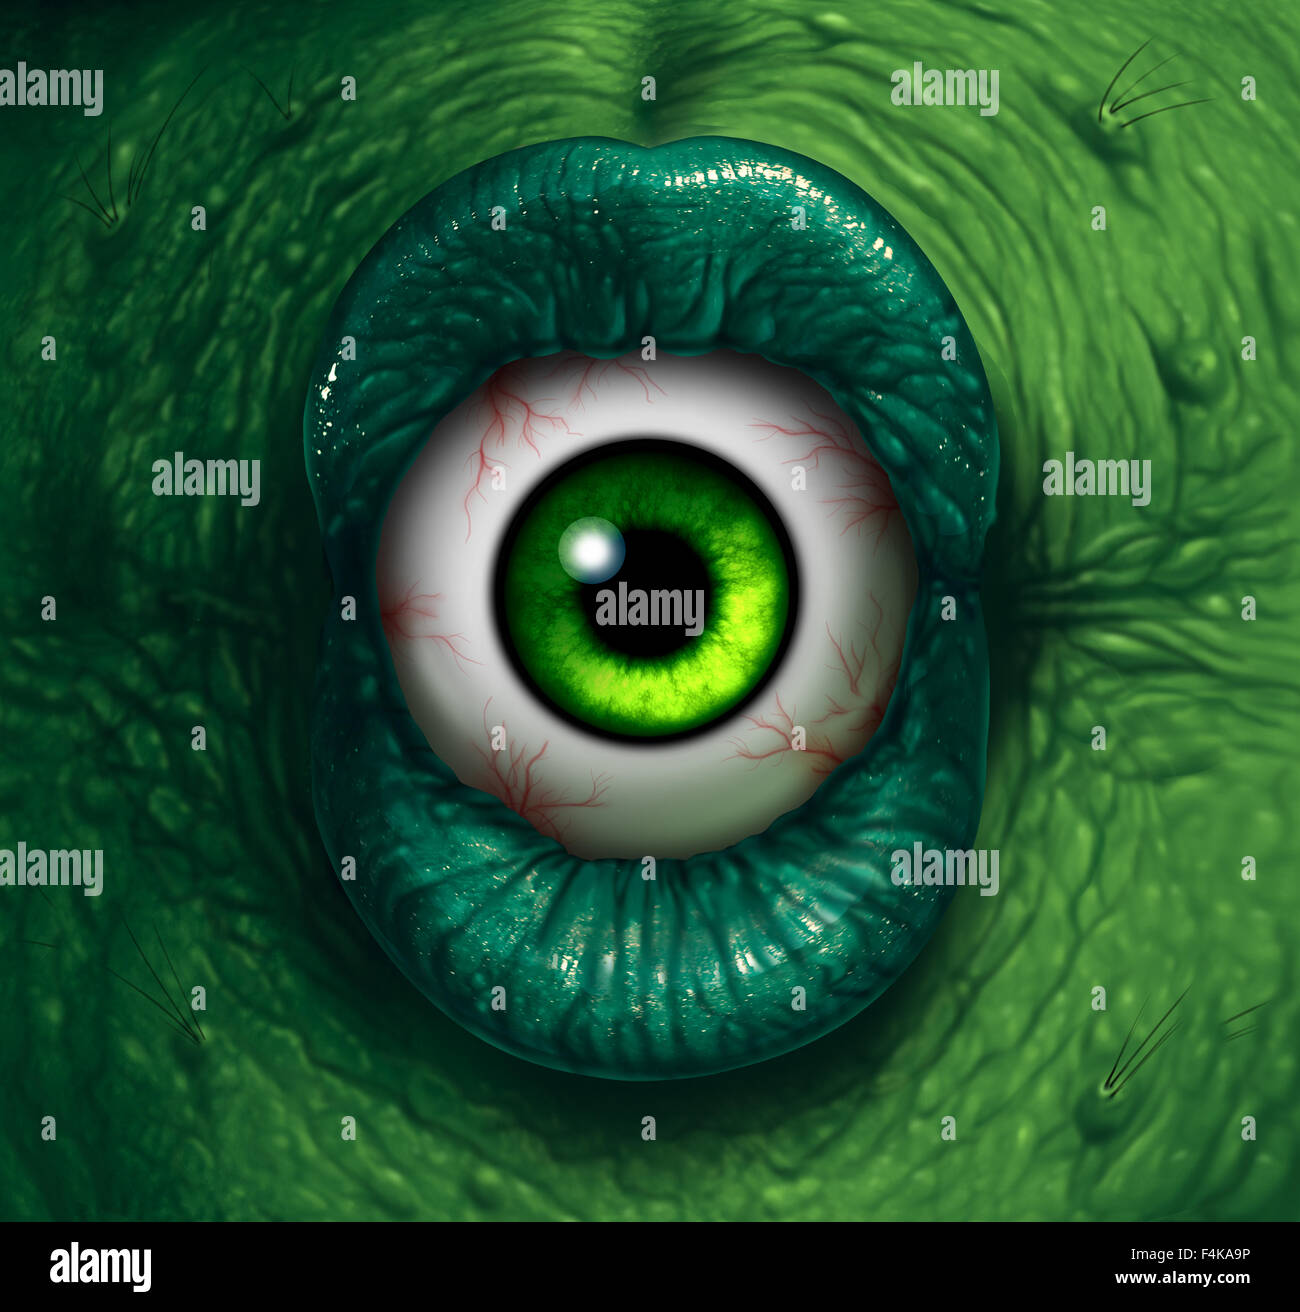 Monster eye halloween ogre demon closeup with evil green lips biting into a disgusting eyeball as a nightmare zombie - Stock Image